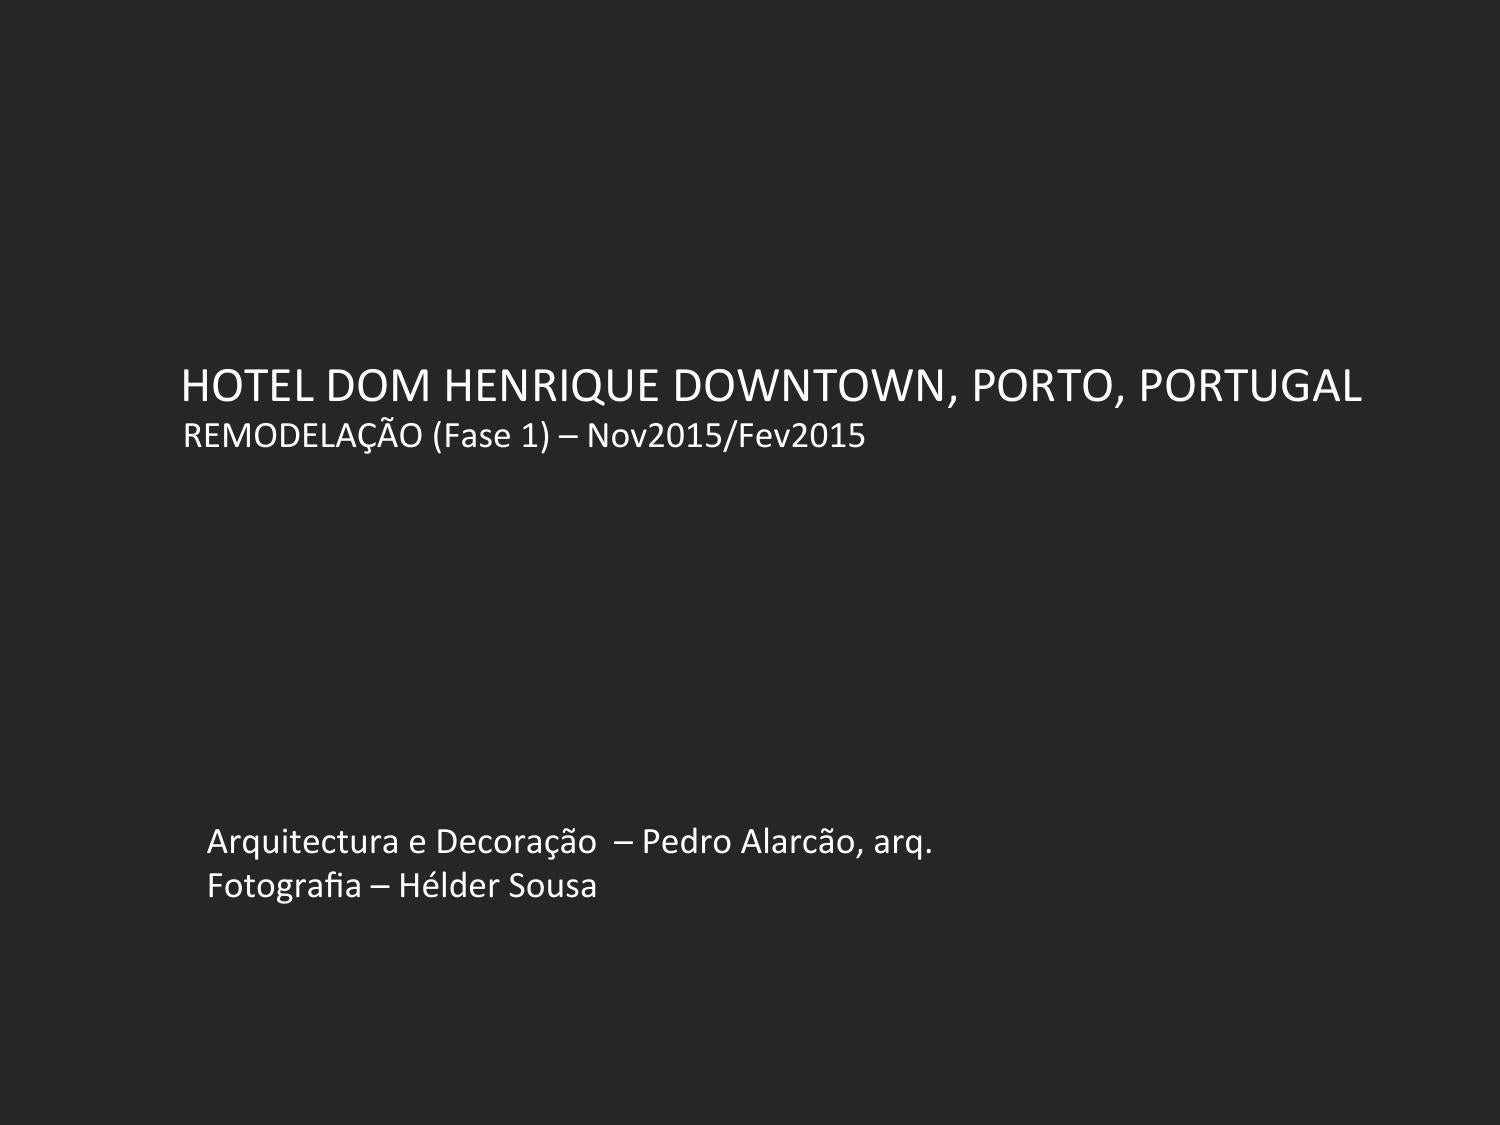 Hotel Dom Henrique Downtown